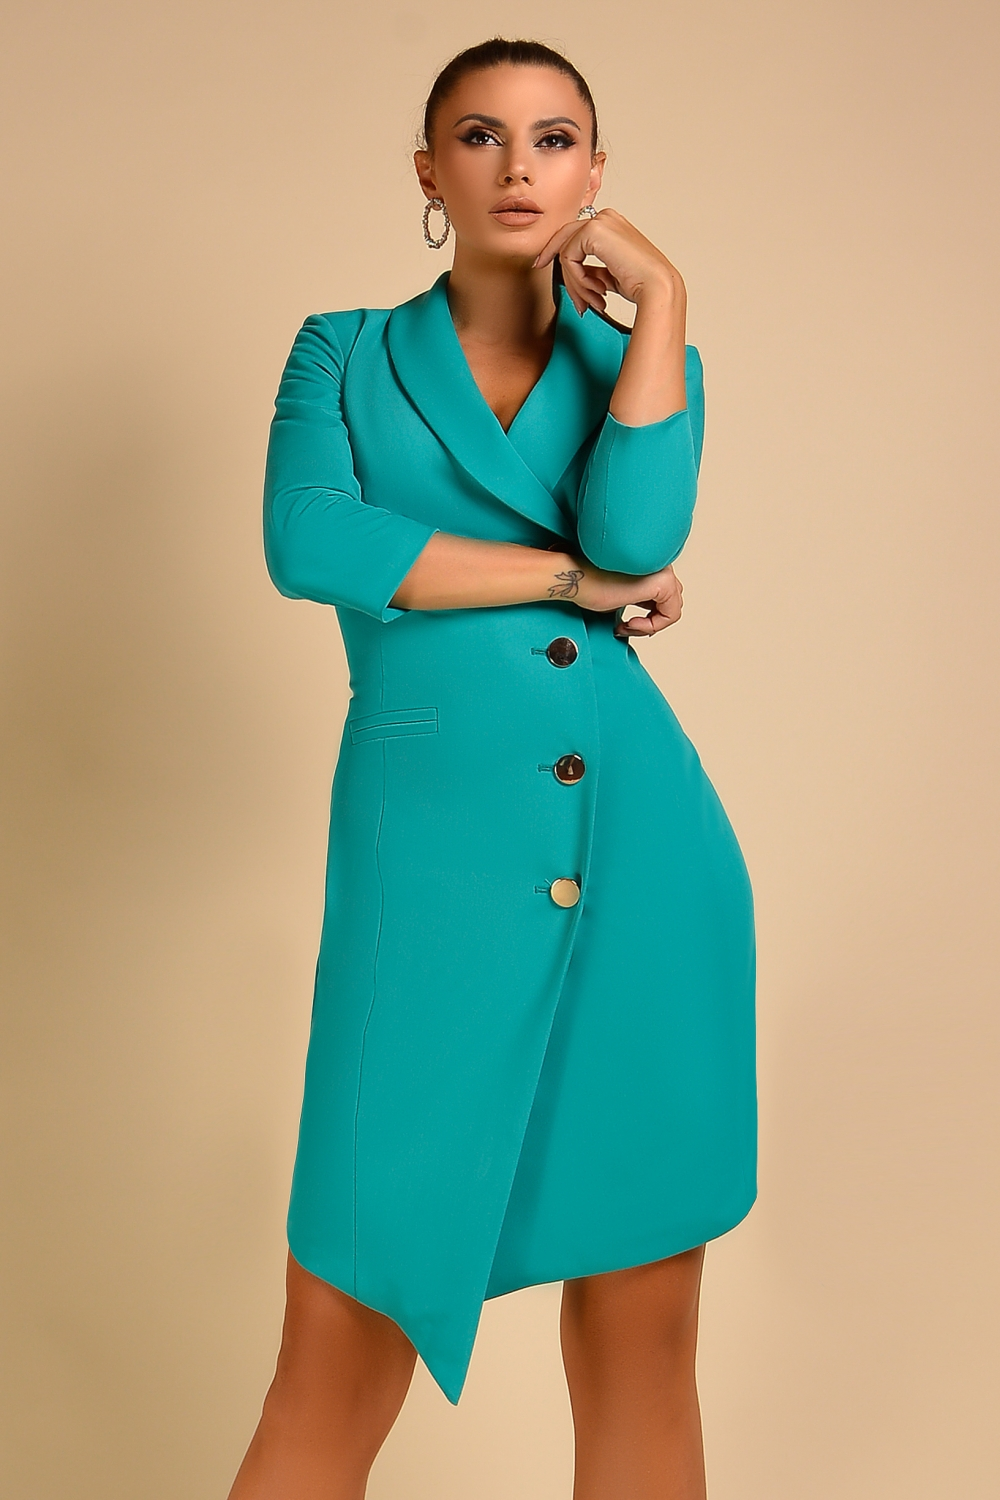 Sacou-rochie turquoise Rn 2110